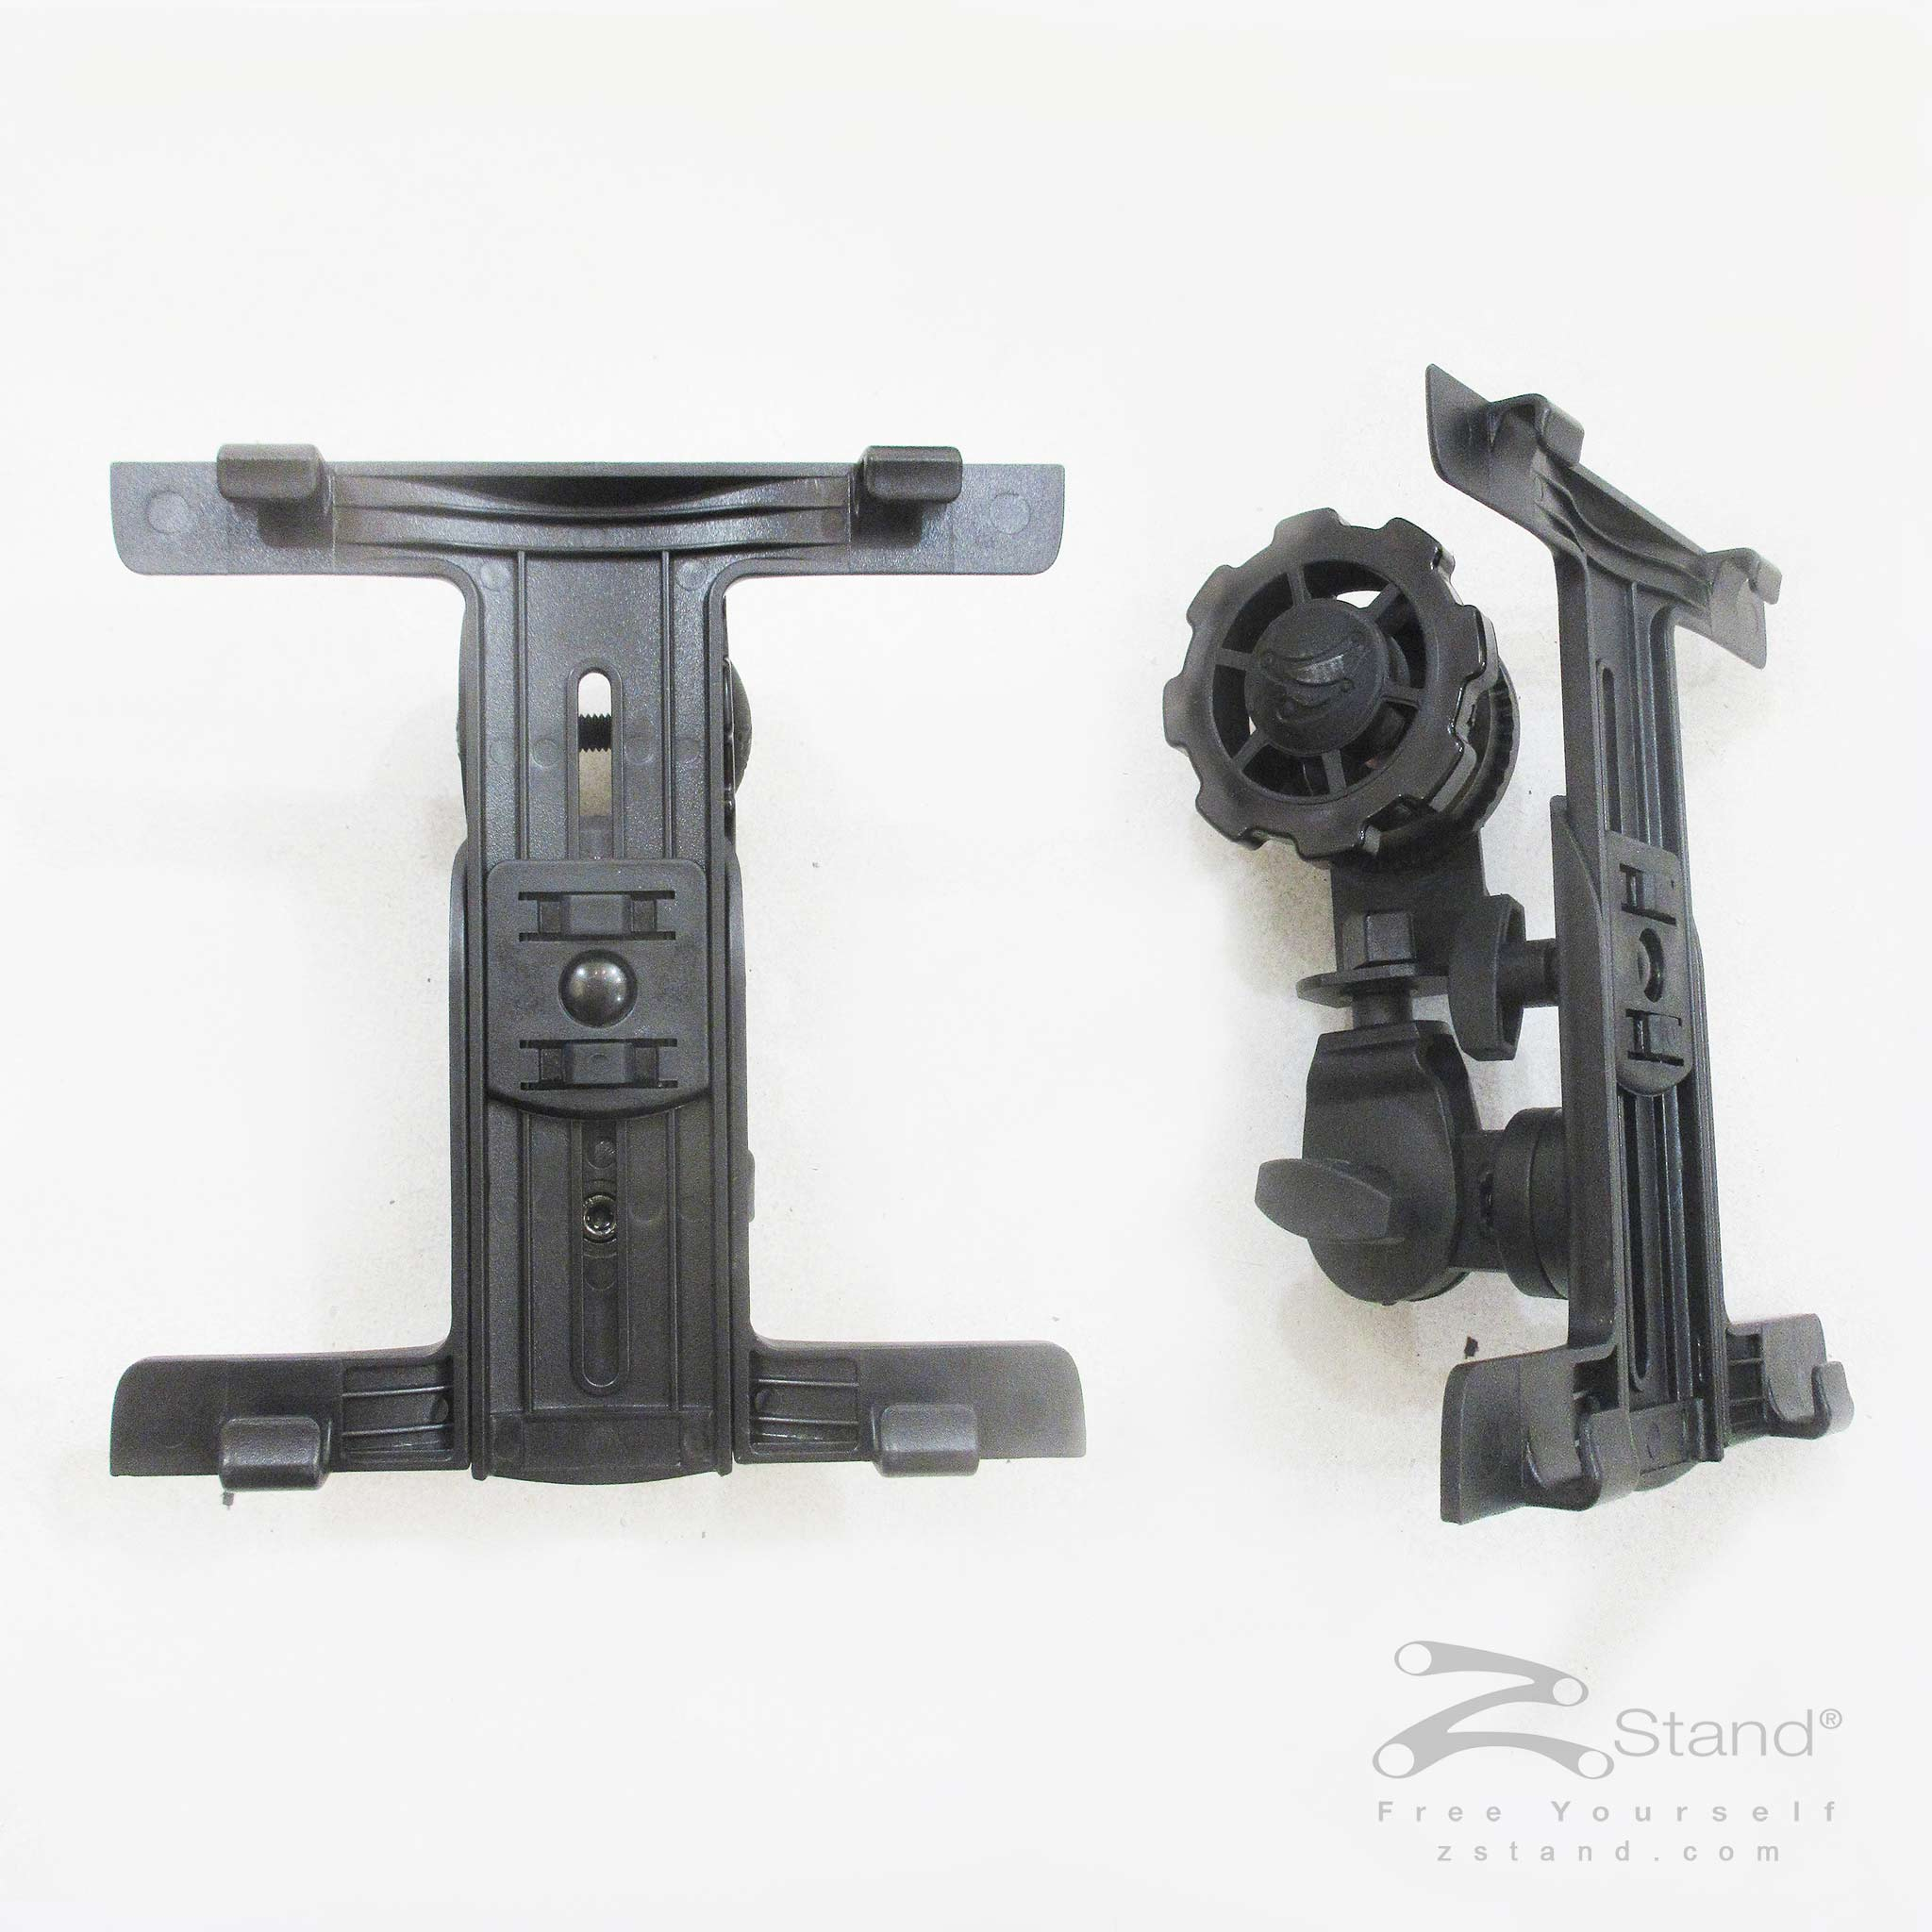 Front and side view of the ZStand AllStar Pro head assembly for holding tablet devices.